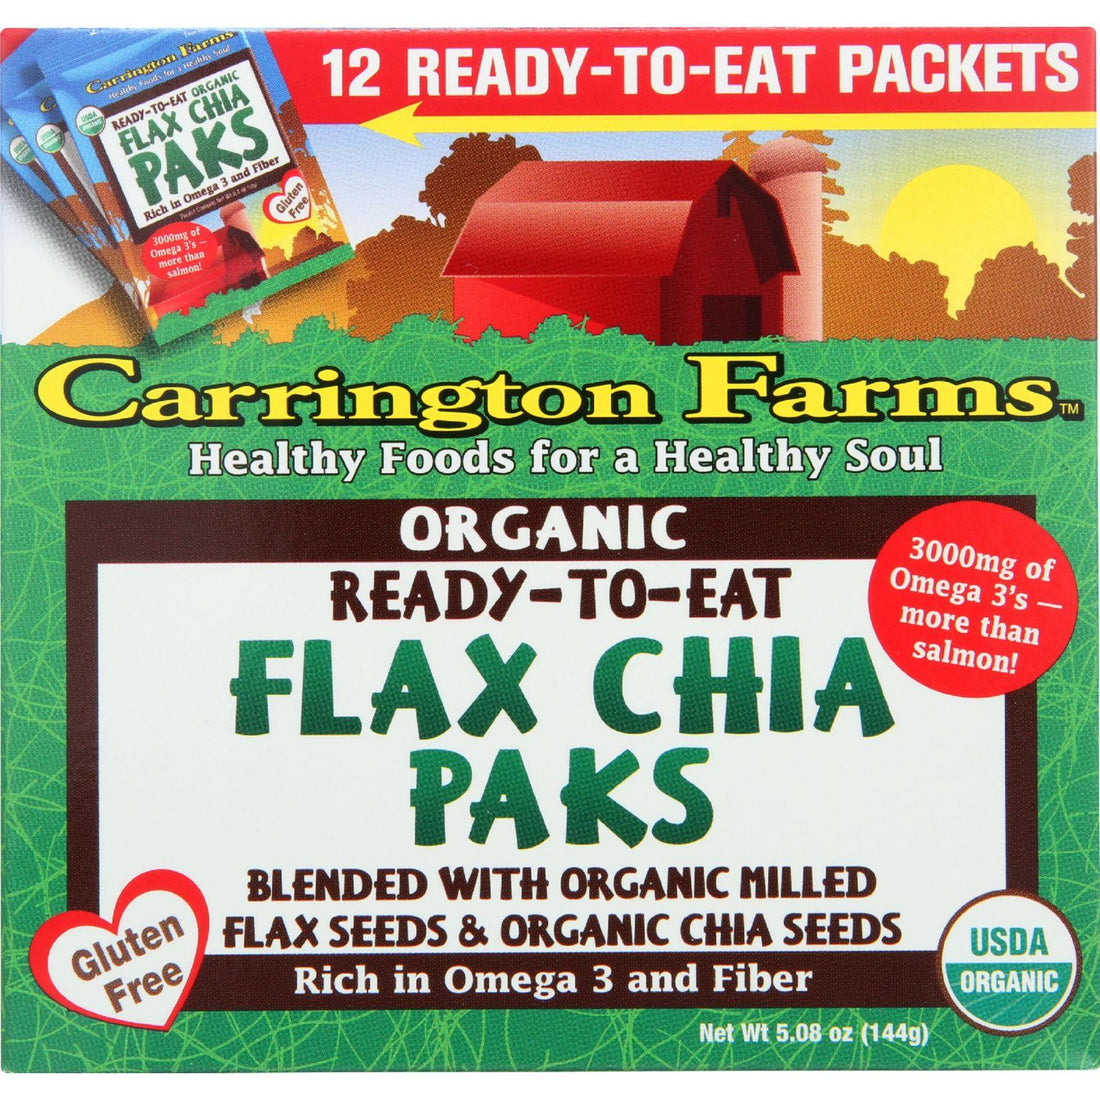 Mother Mantis: Carrington Farms Flax Paks - Organic - Ready To Eat - Chia - 12 Count - Case Of 6 Carrington Farms